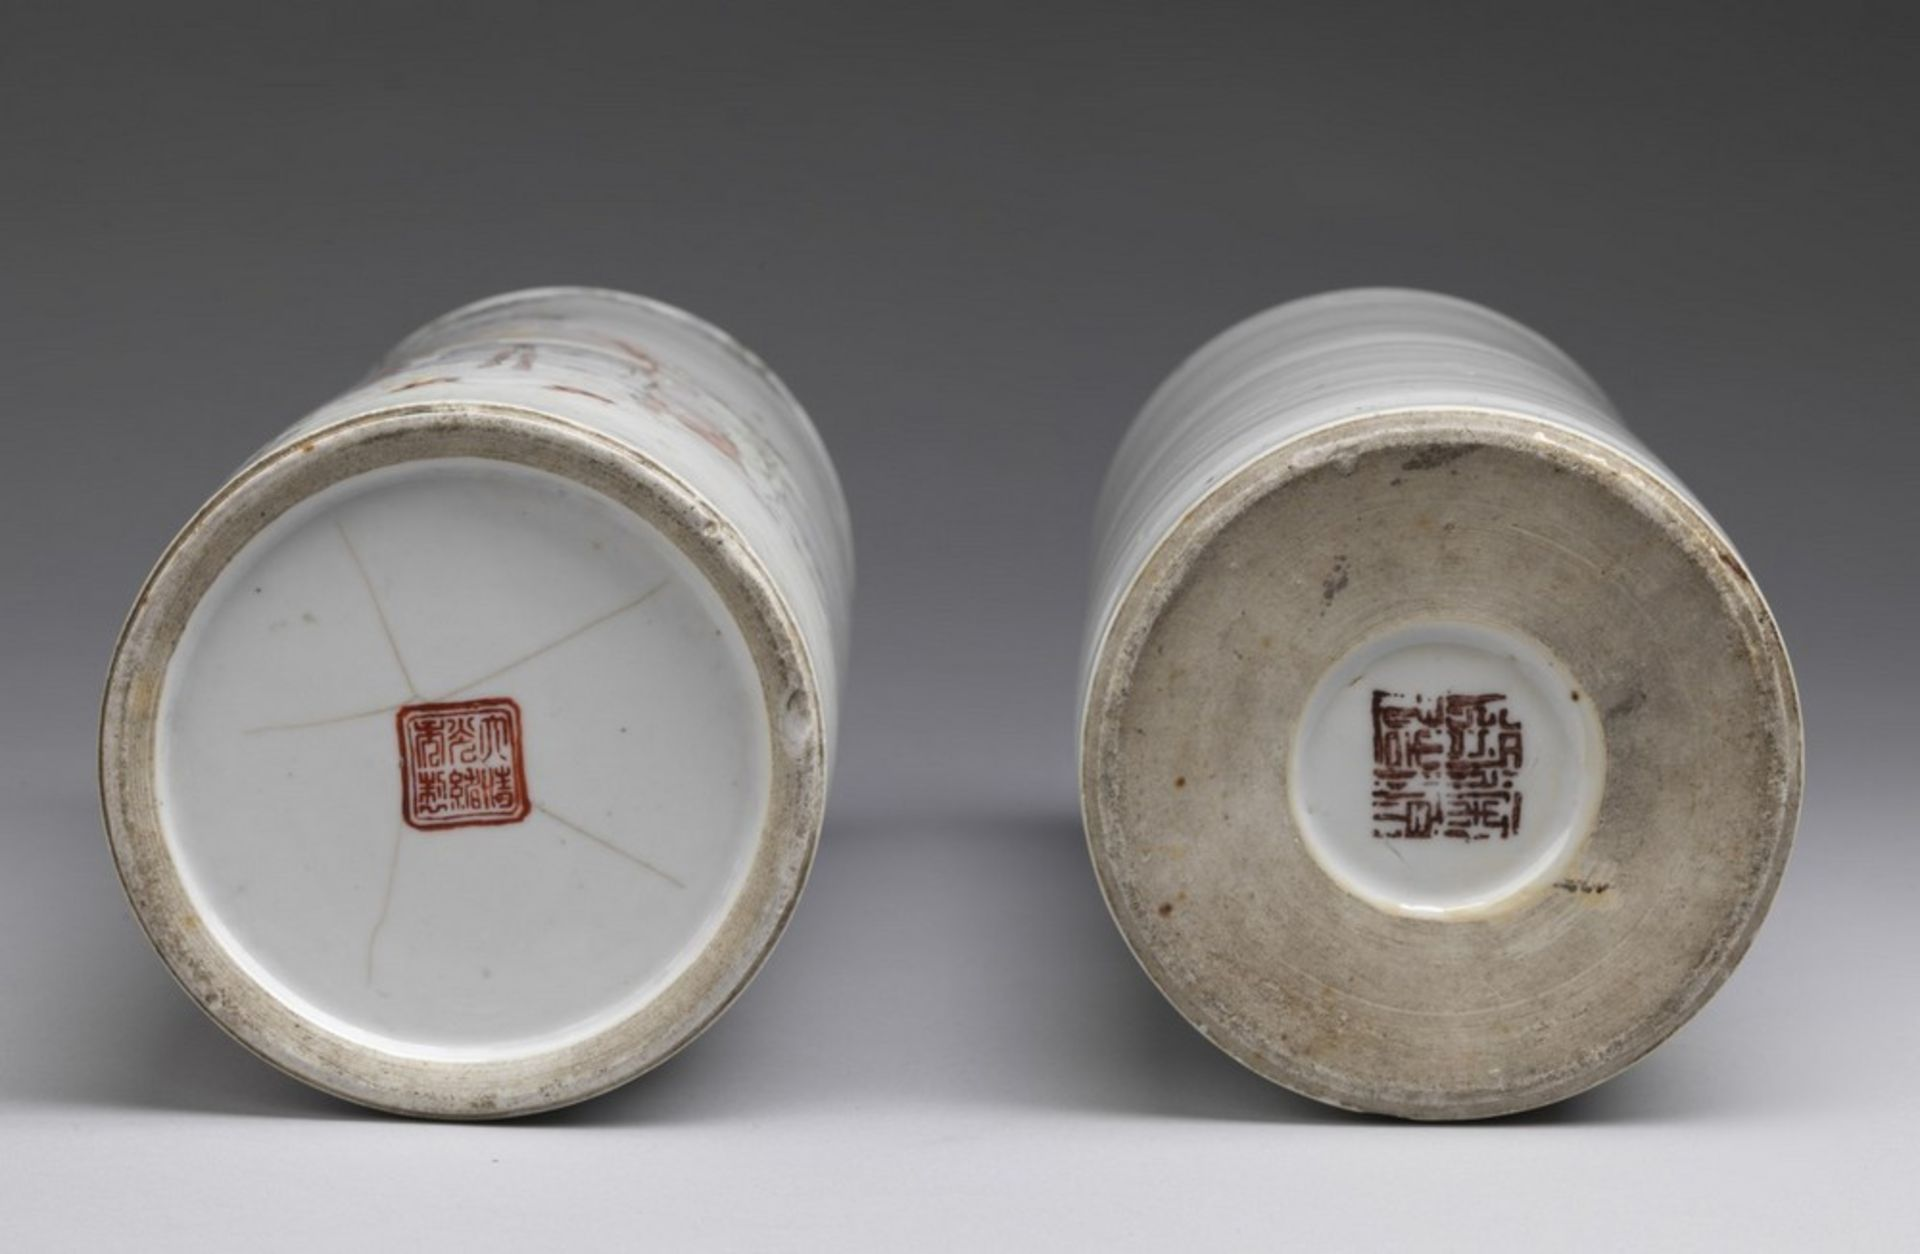 Arte Cinese Two cylindrical shaped pottery vasesChina, 20th century . - Image 3 of 3